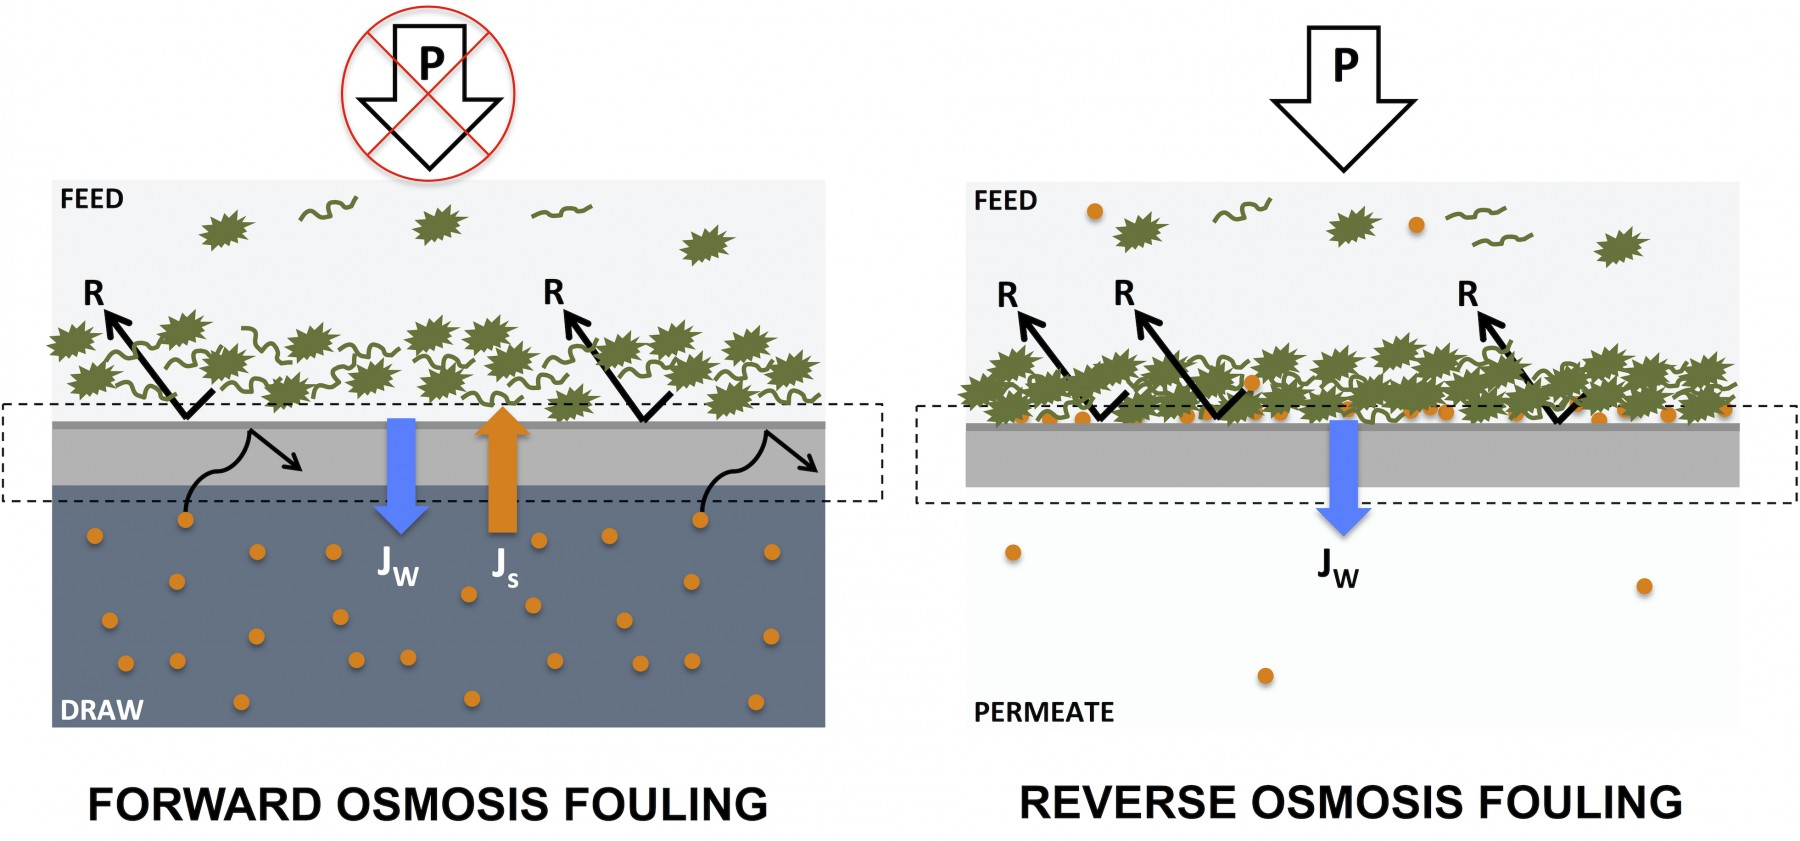 Membrane fouling in forward osmosis processes is reversible